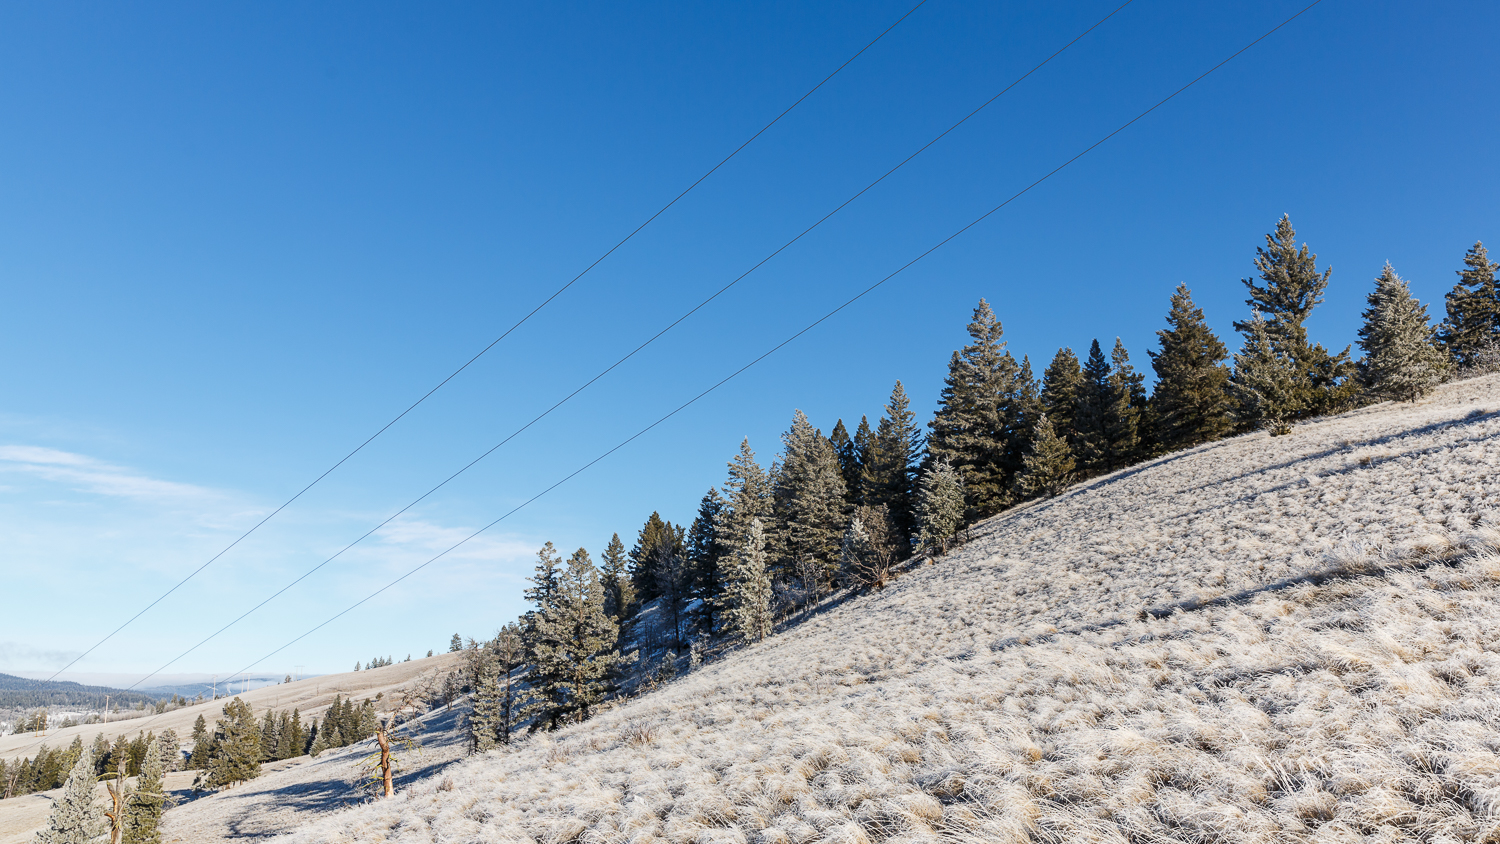 Existing power lines were live during the operation, which only added to the risk factors involved in such a project.